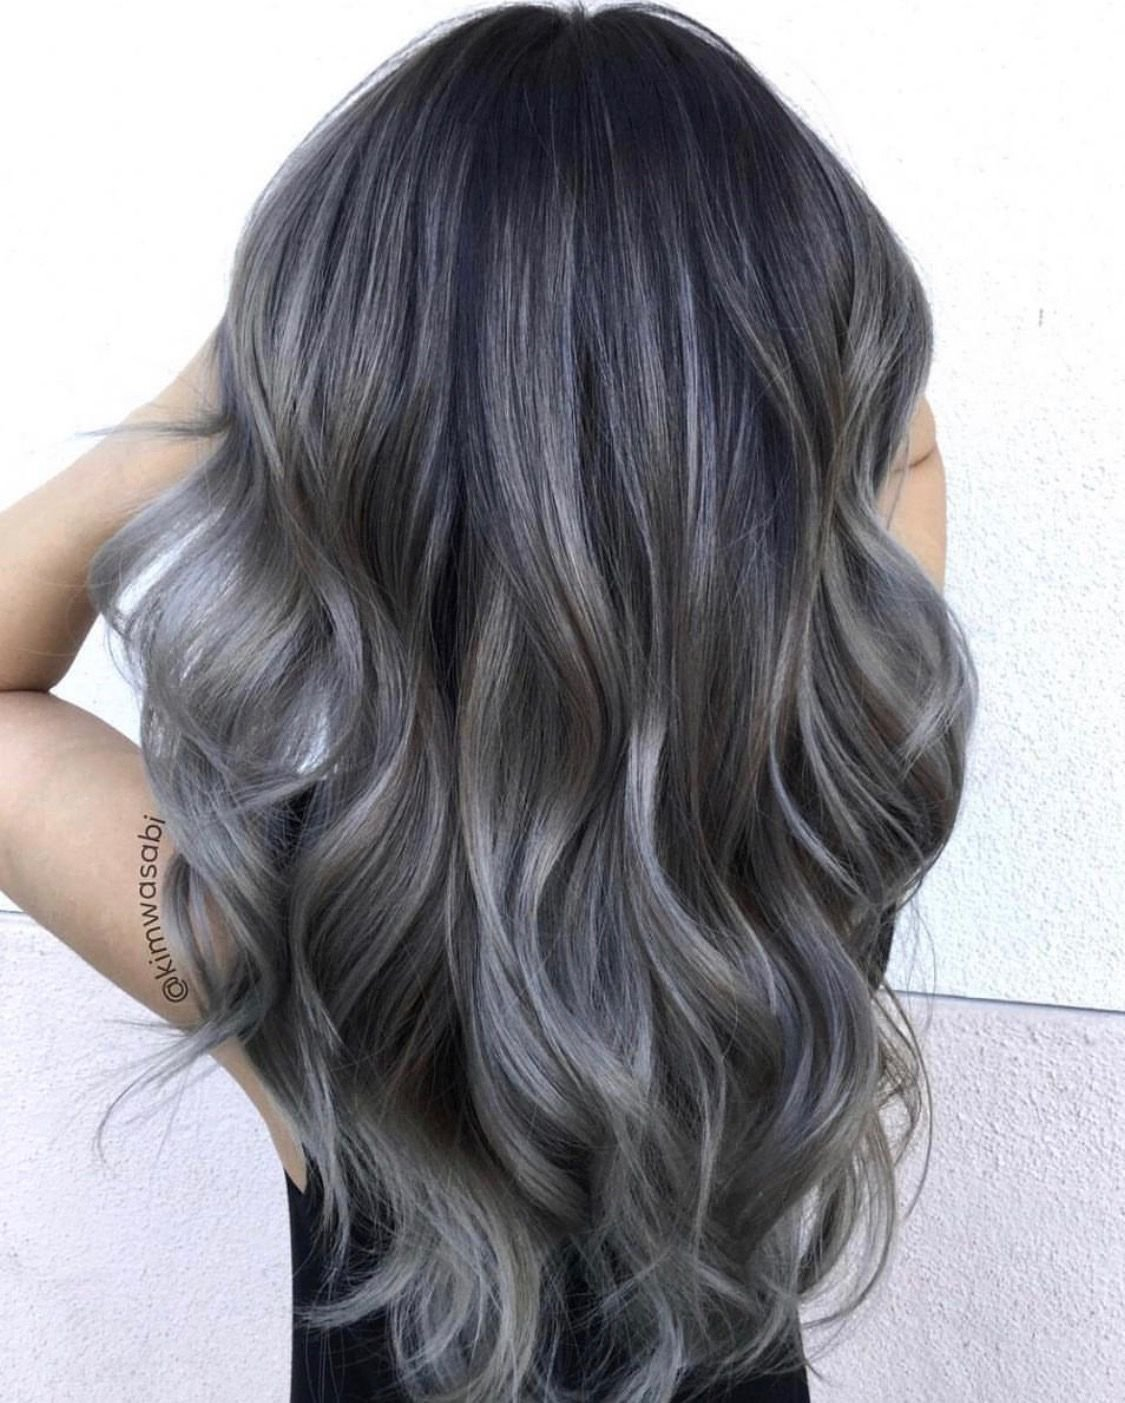 The Best Ash Grey Balayage Balayage Ombre Colorful In 2019 Pictures